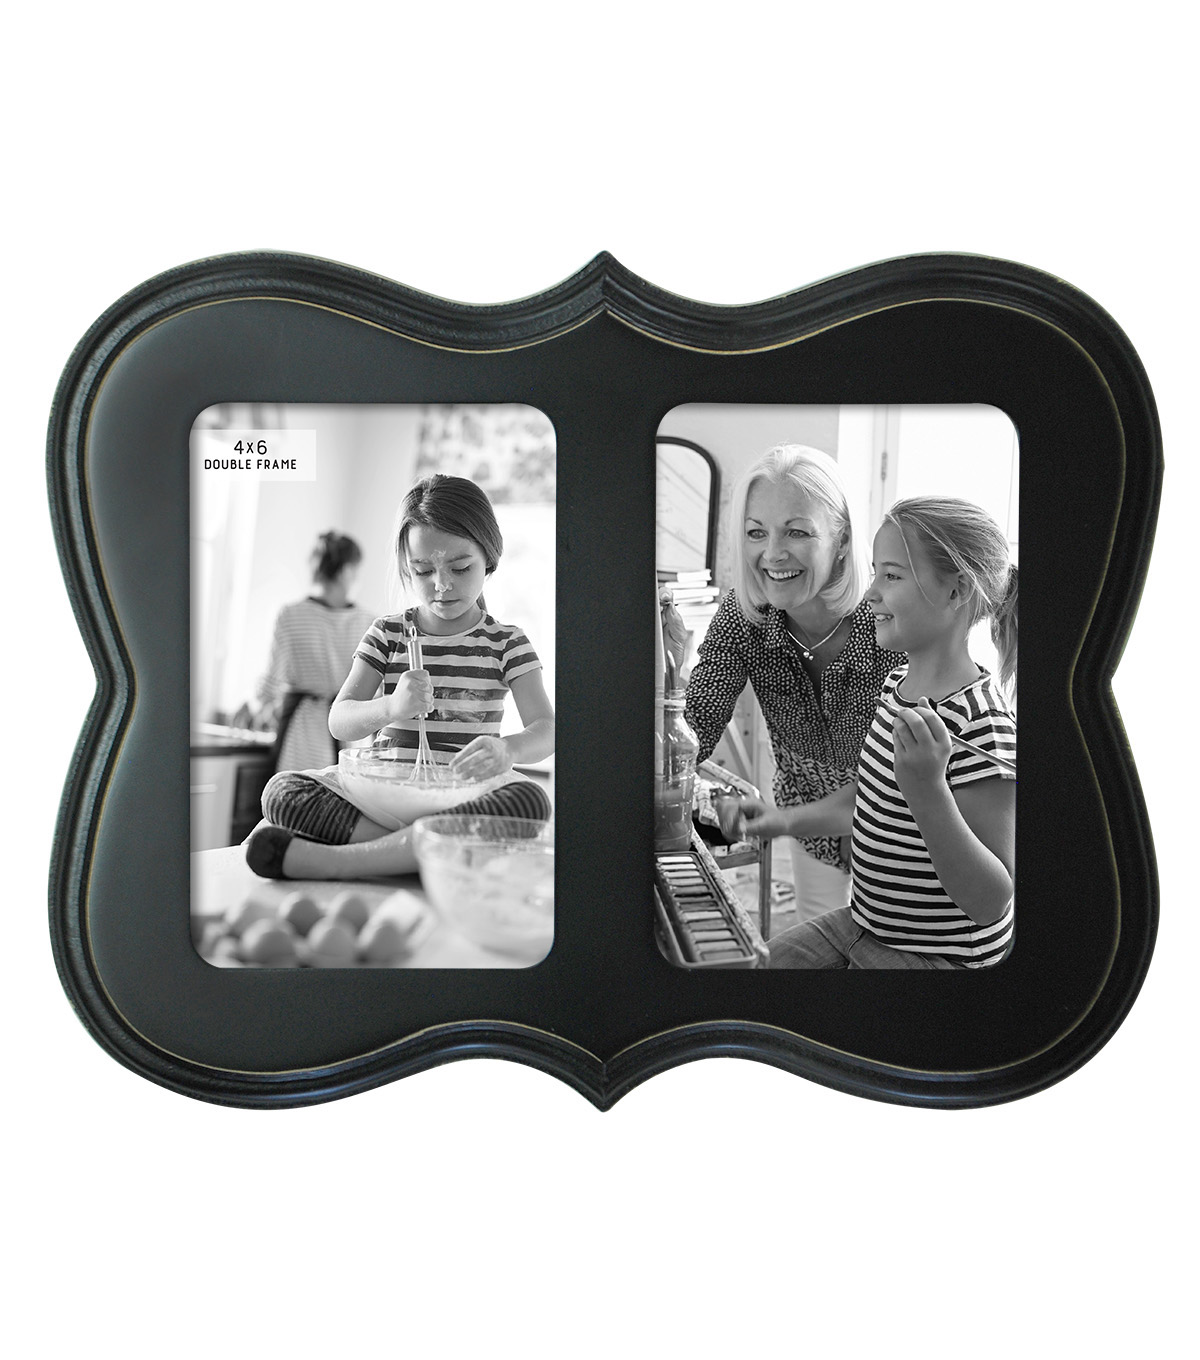 Tabletop Frame 4X6-Double Op Scallop Distressed Black